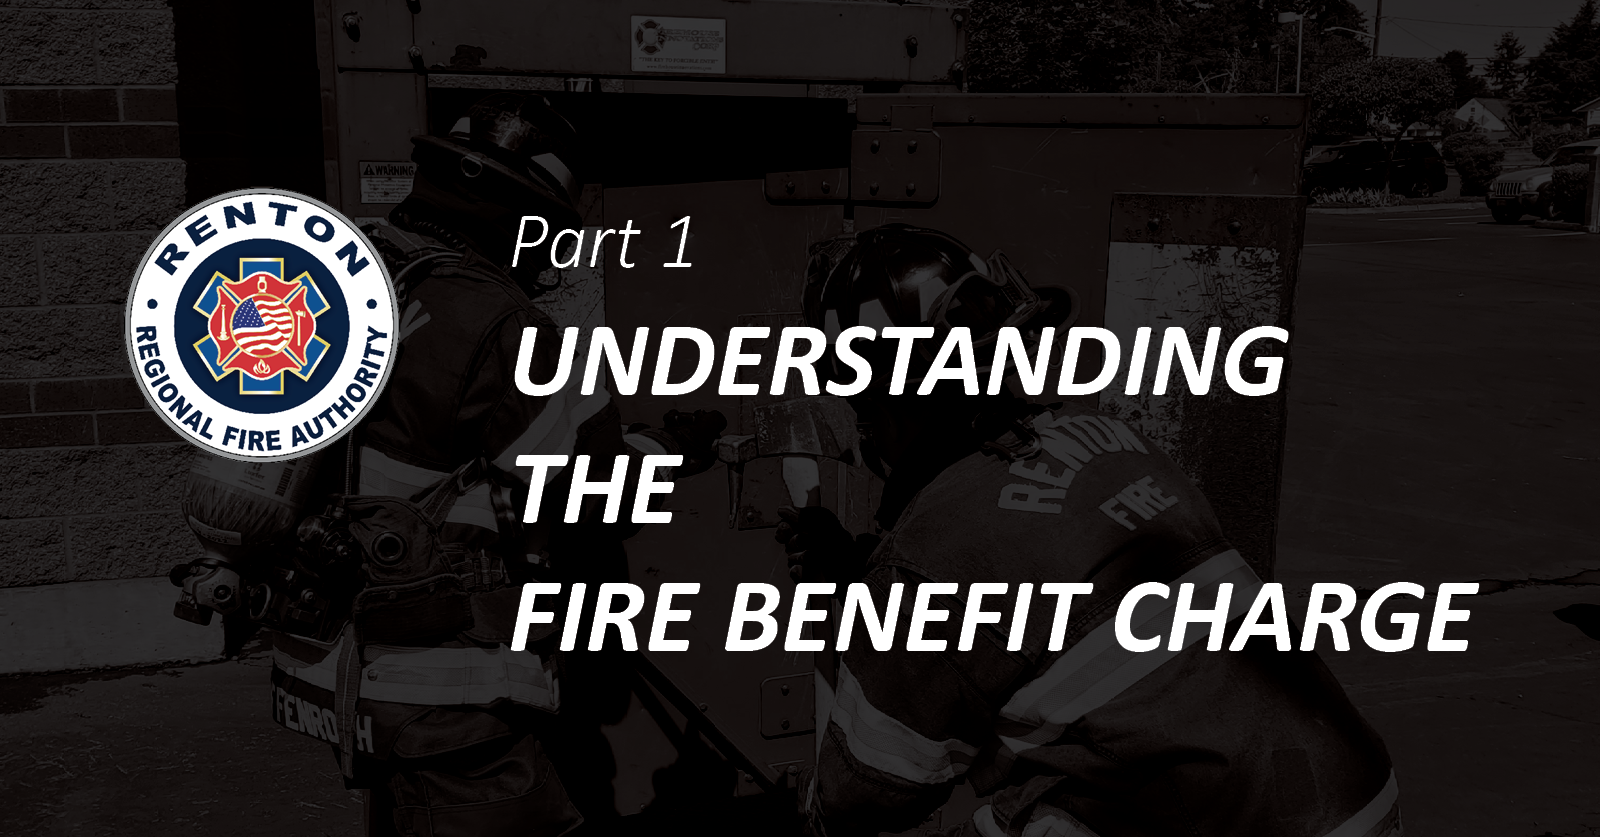 PART 1: Understanding the Fire Benefit Charge